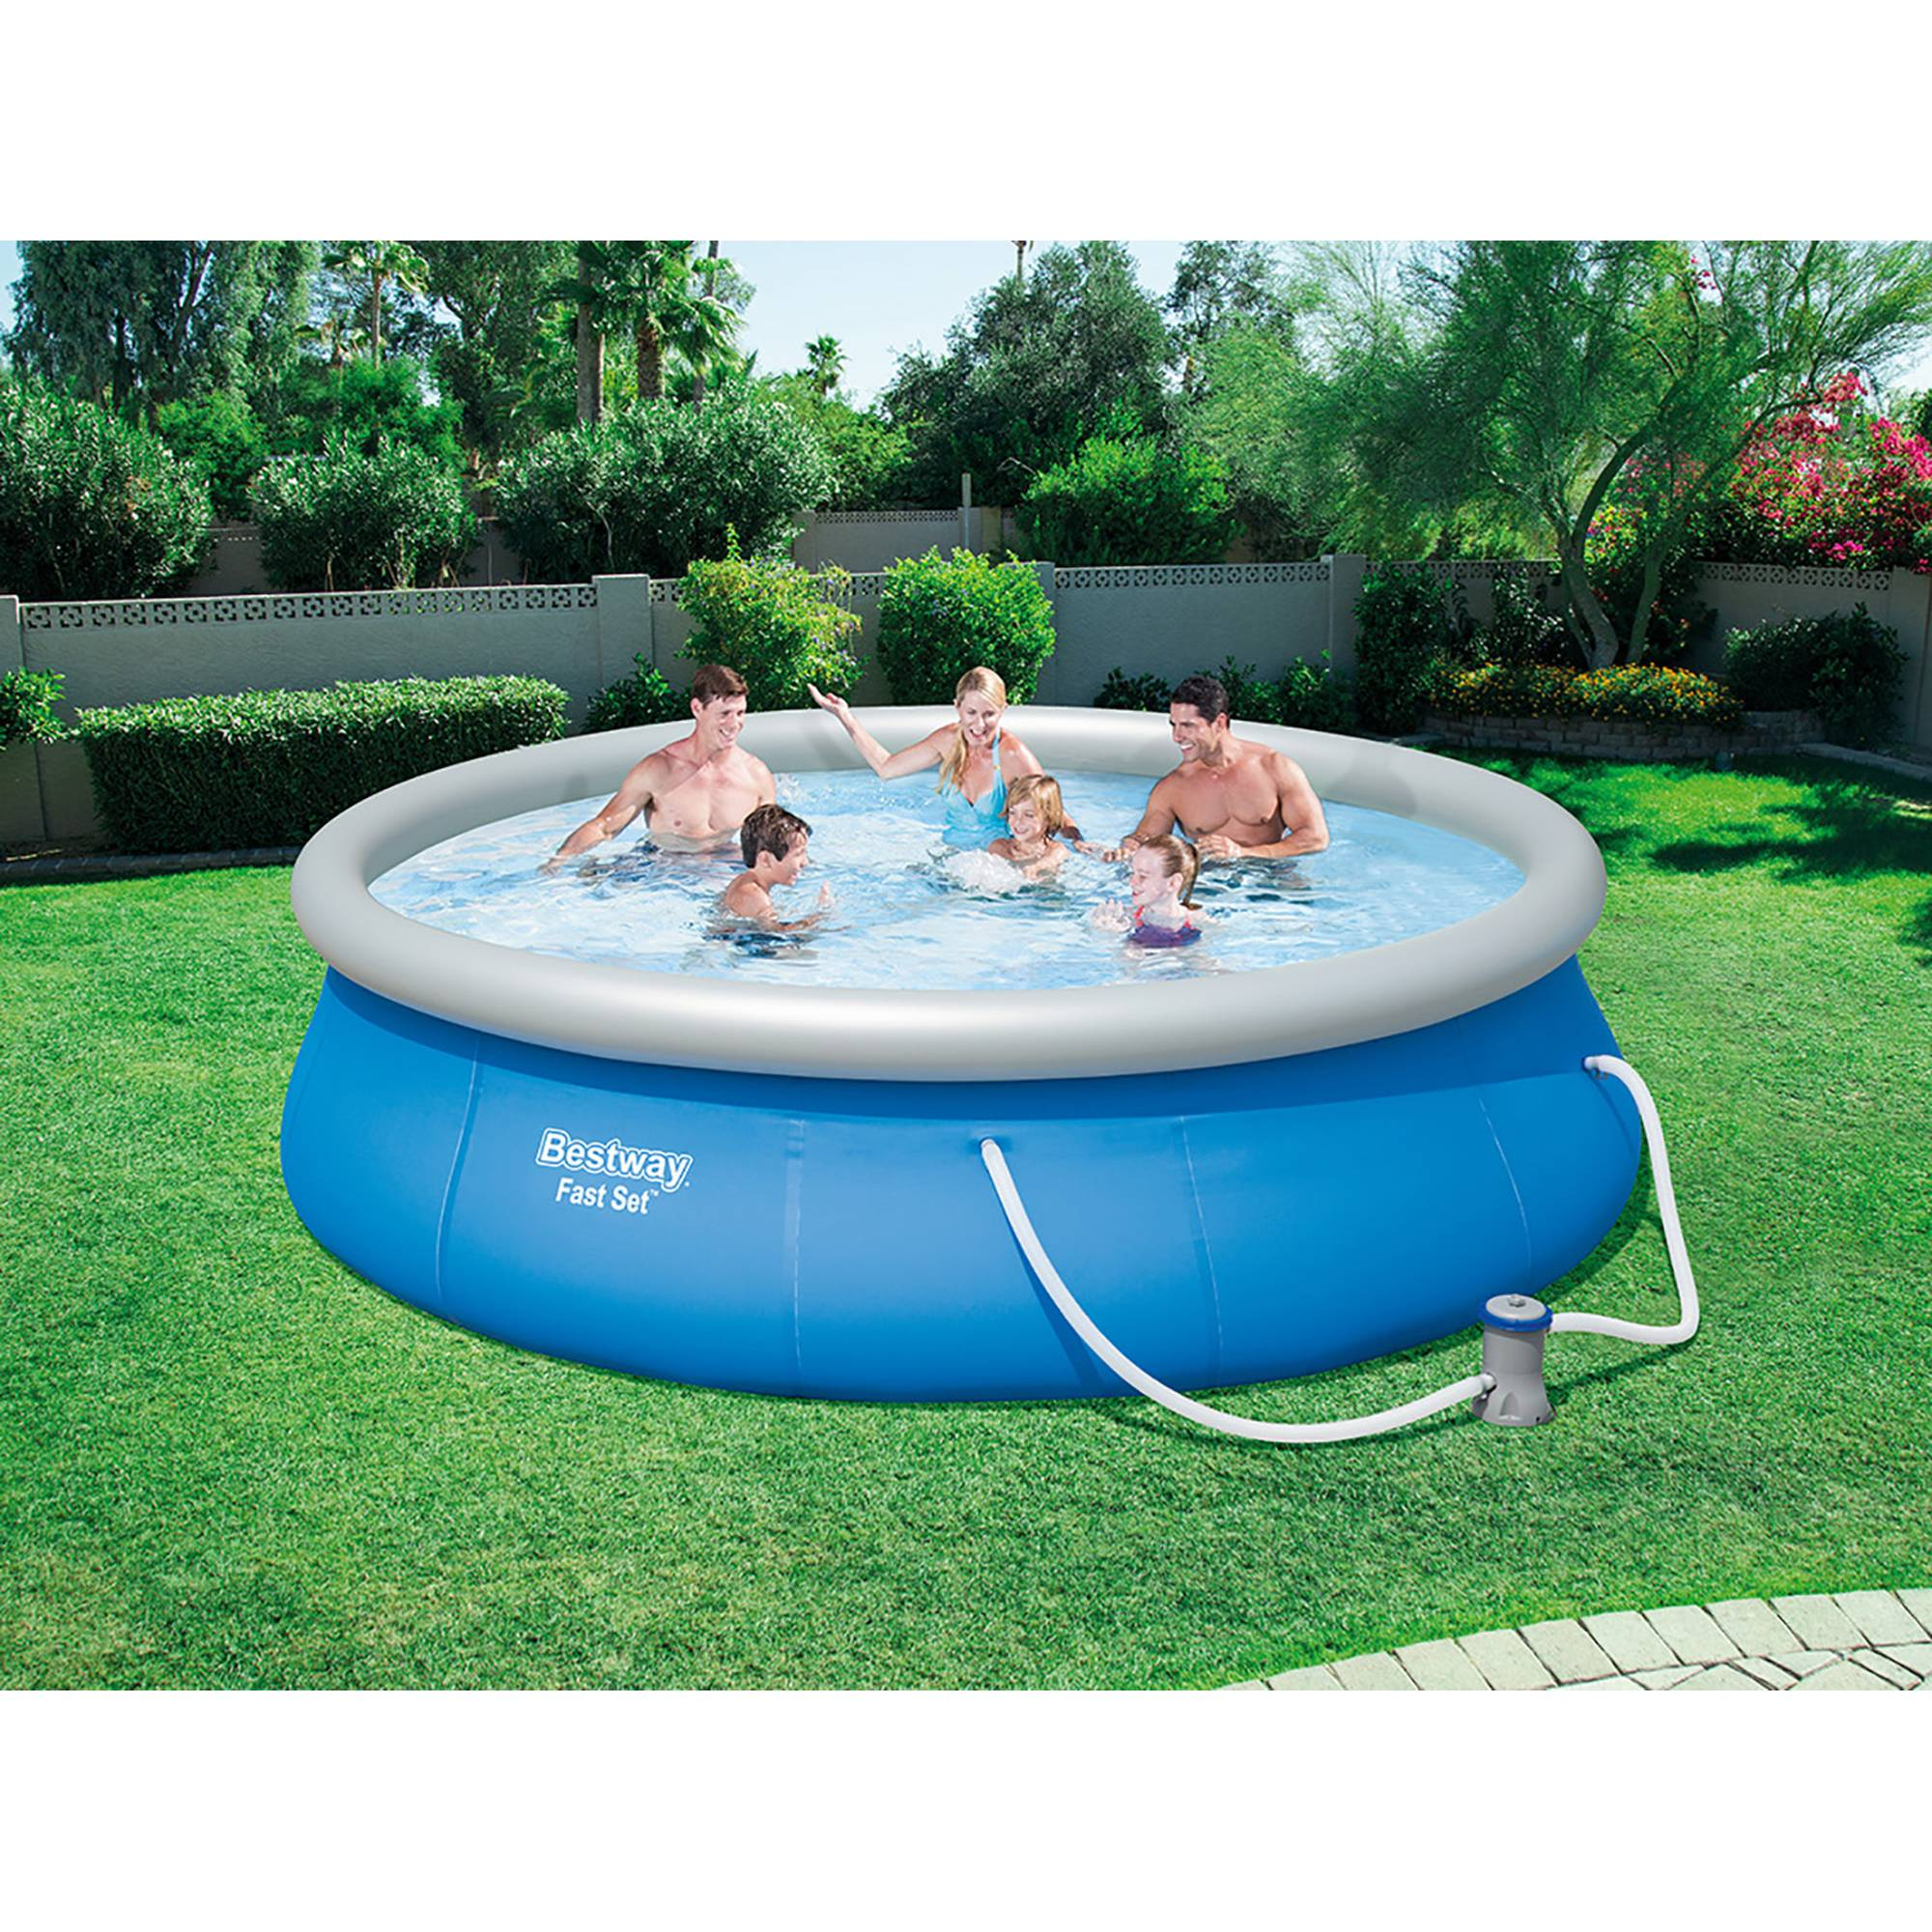 Sandfilteranlage Quick Up Pool Quick Up Pool Set 396x84 Cm Mit Kartuschenfilteranlage Von